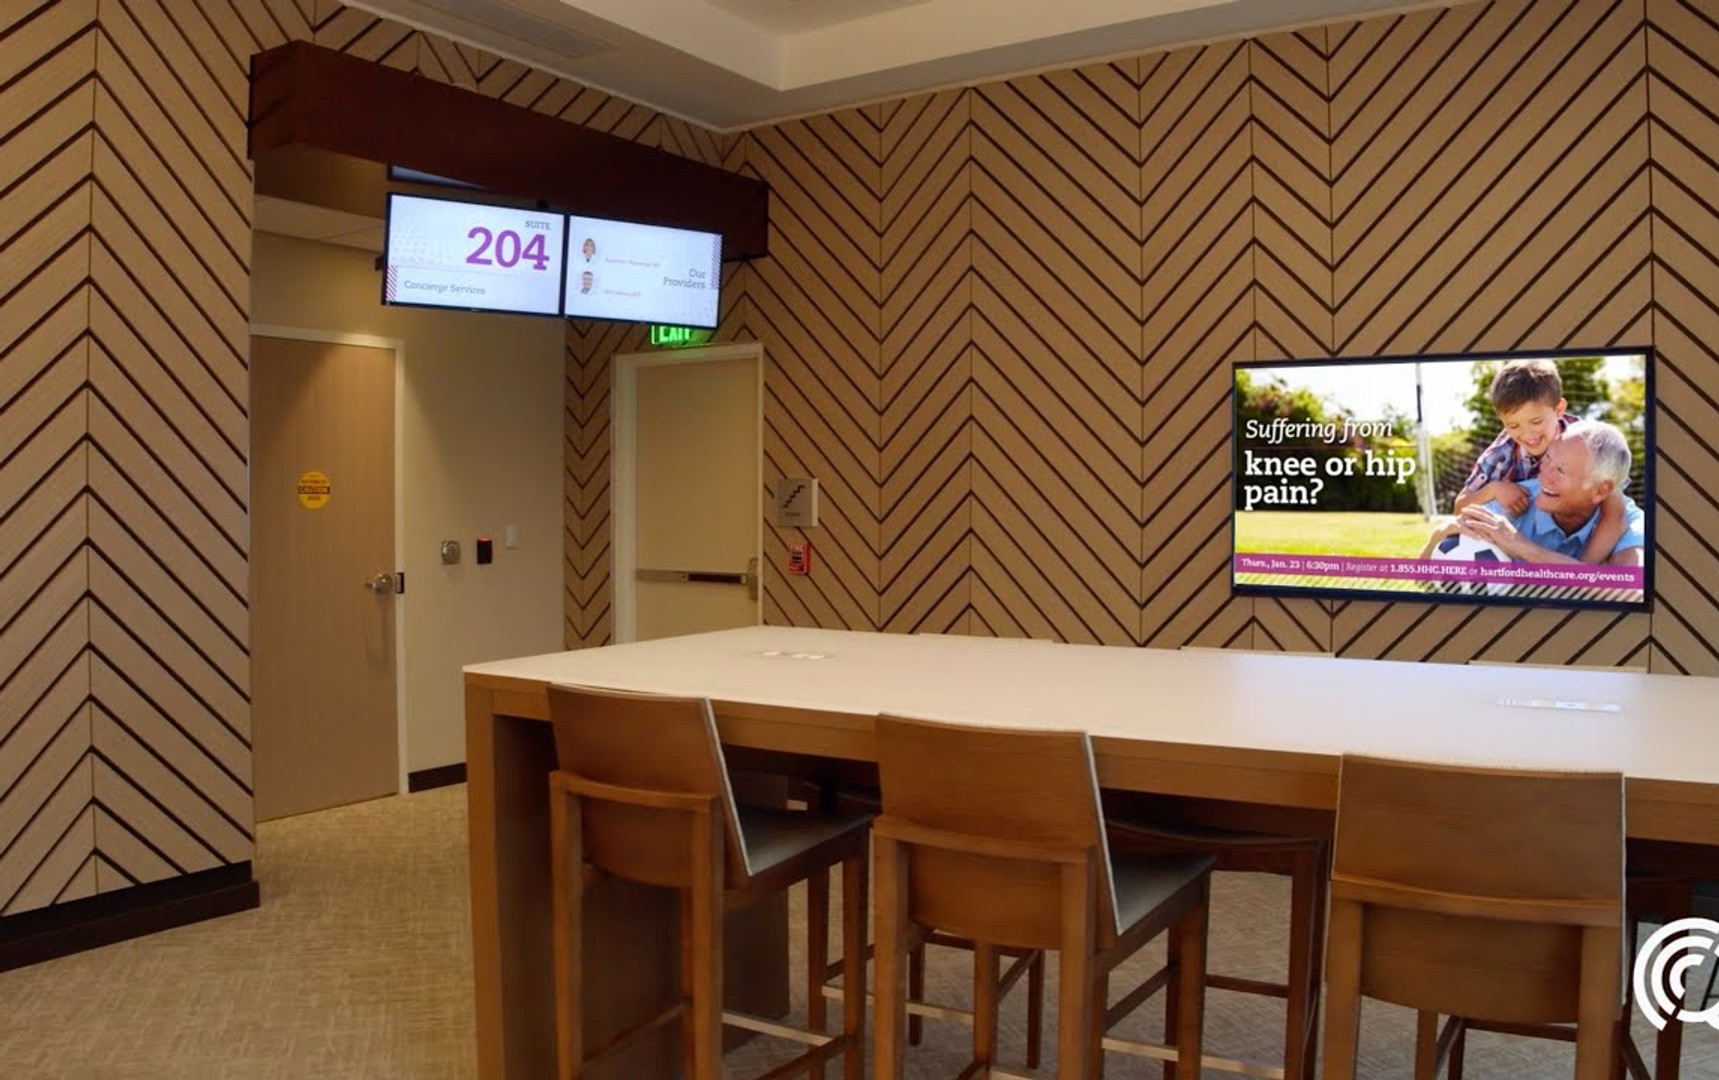 Our latest digital signage project: Mystic